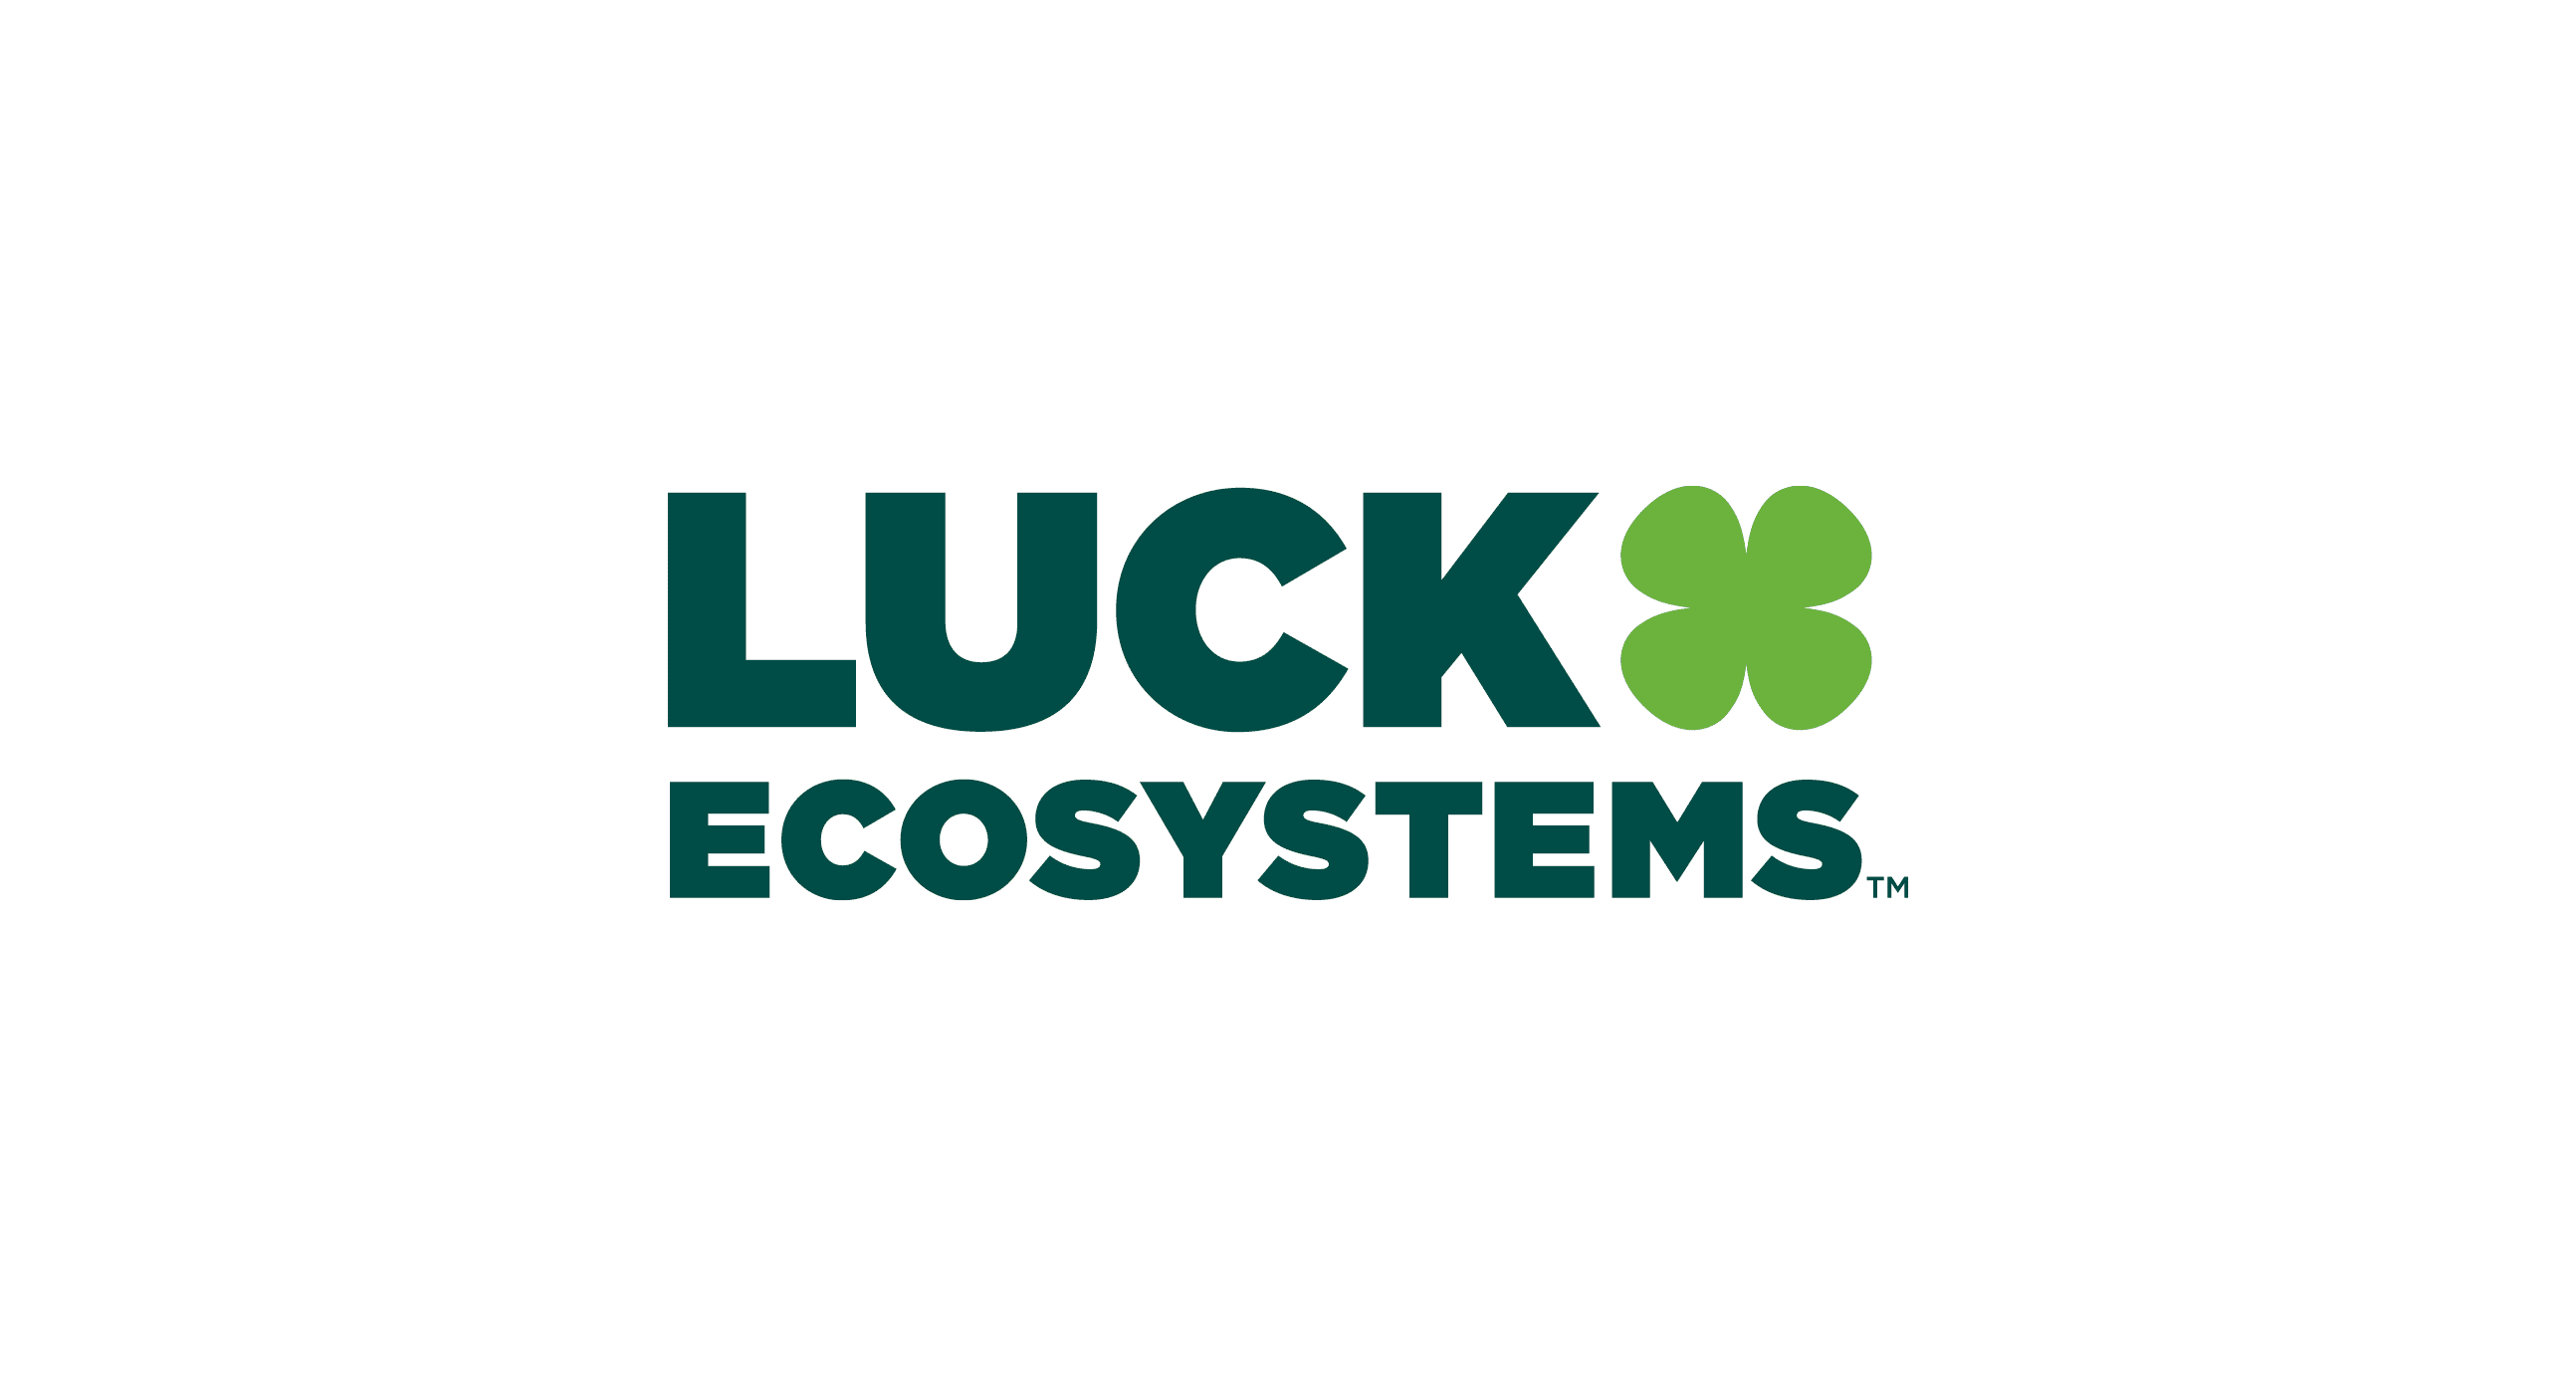 Luck Ecosystems